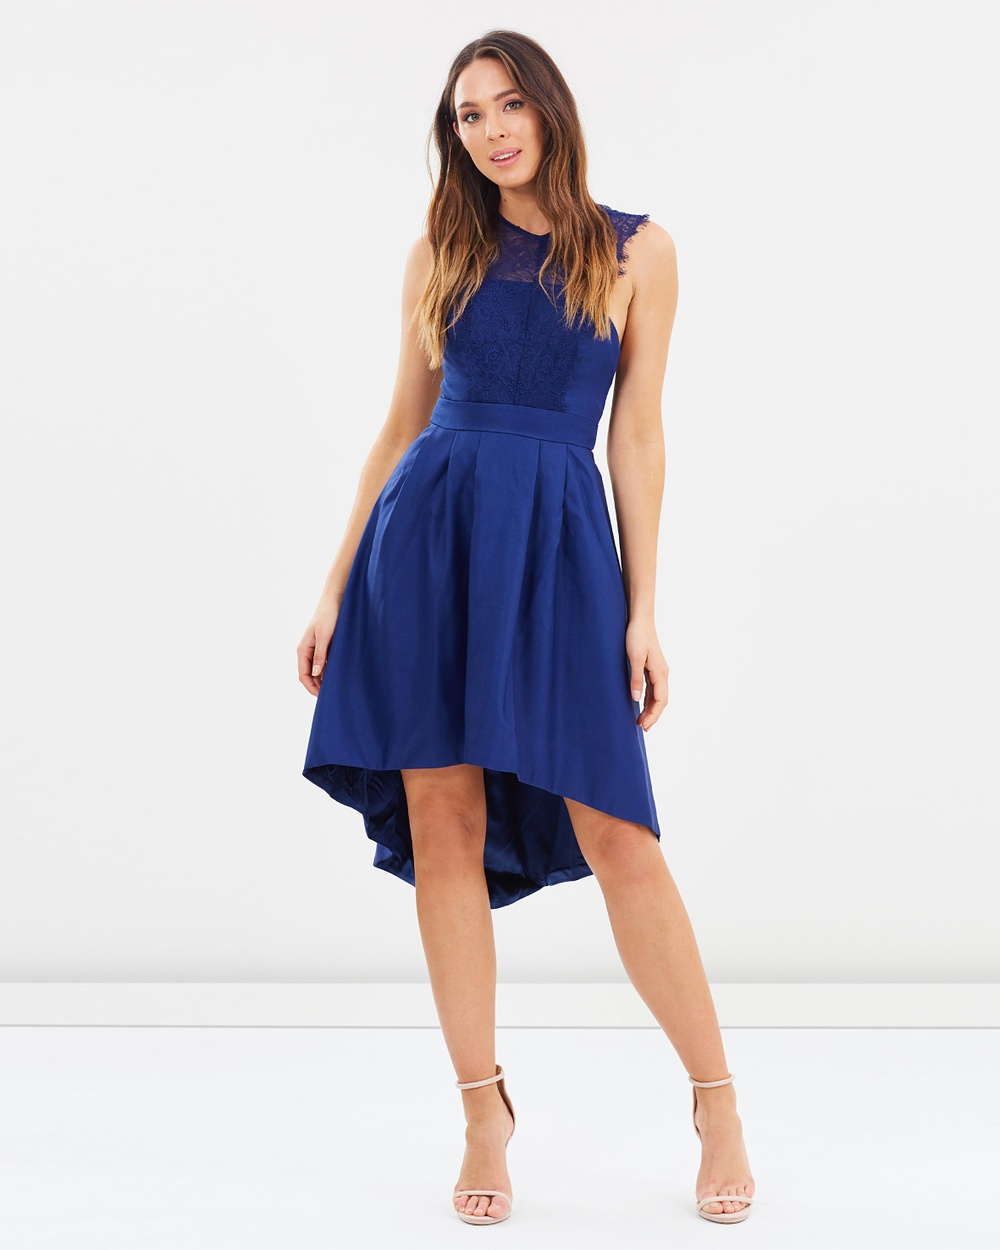 Chi Chi London Signe Dress Dresses Navy Signe Dress